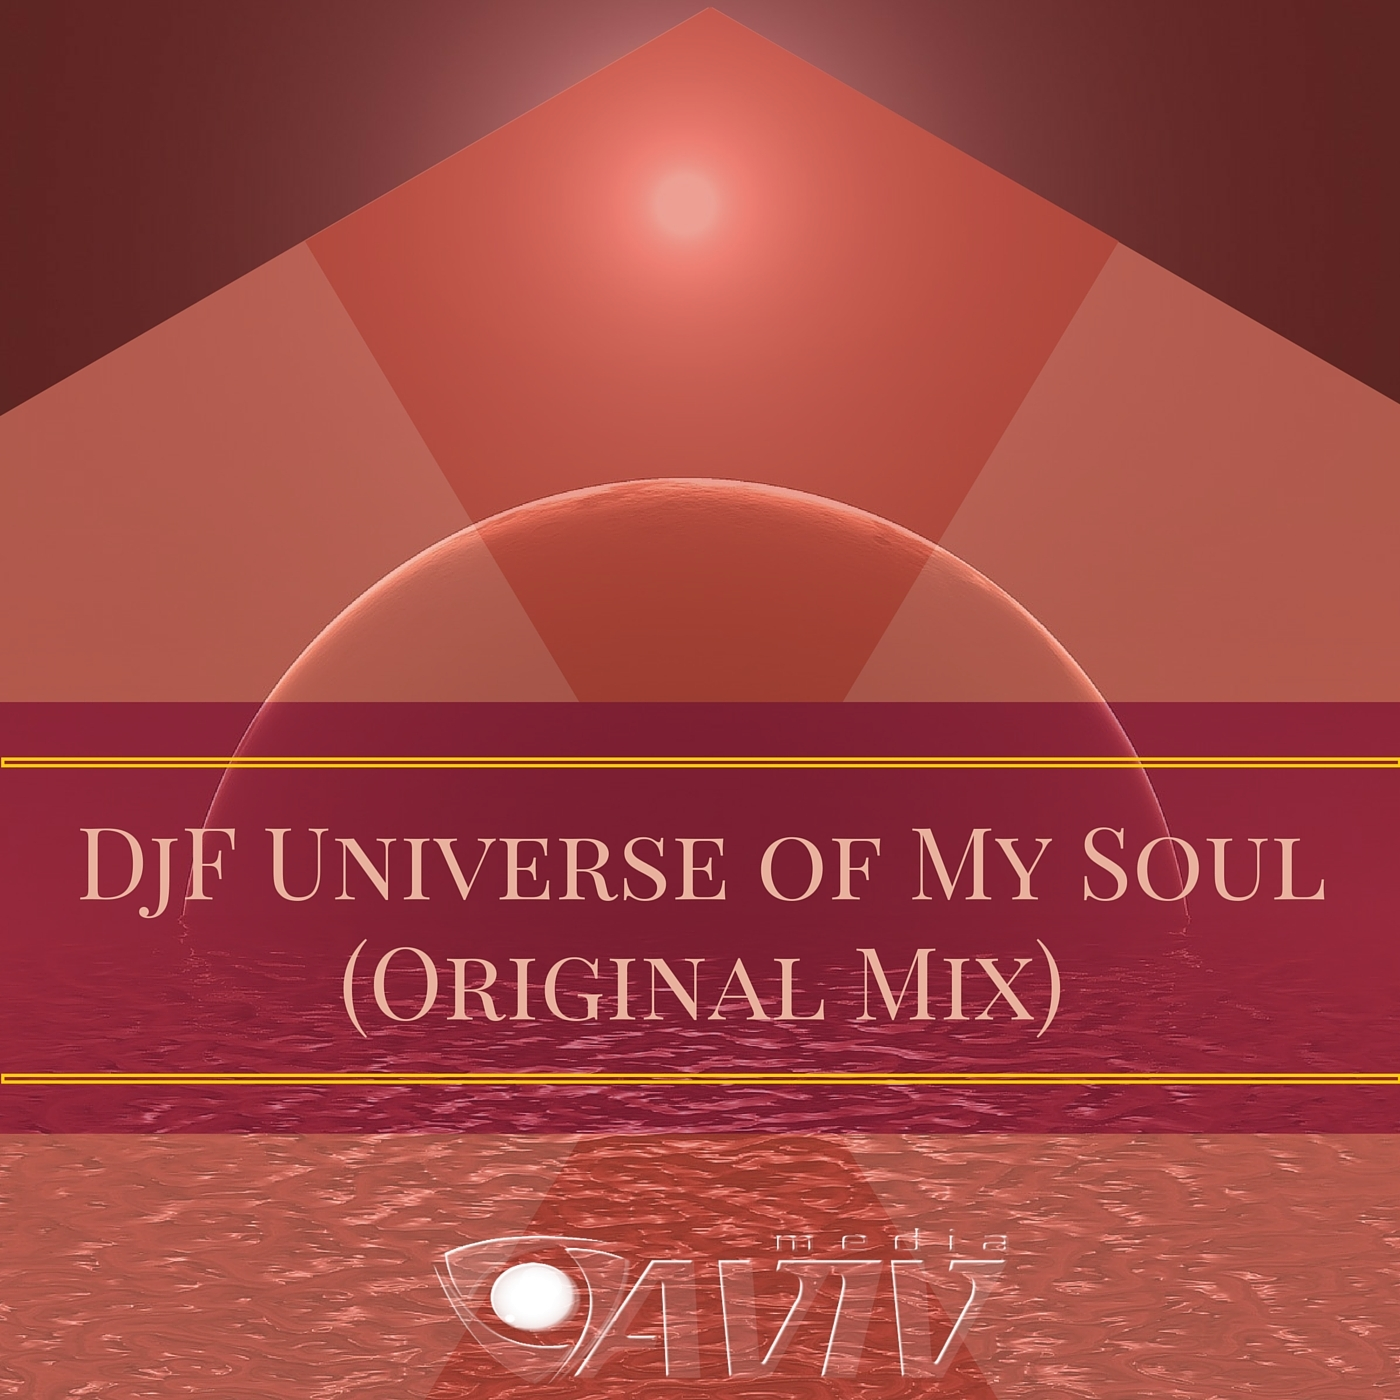 DjF - Universe of My Soul (Original Mix)